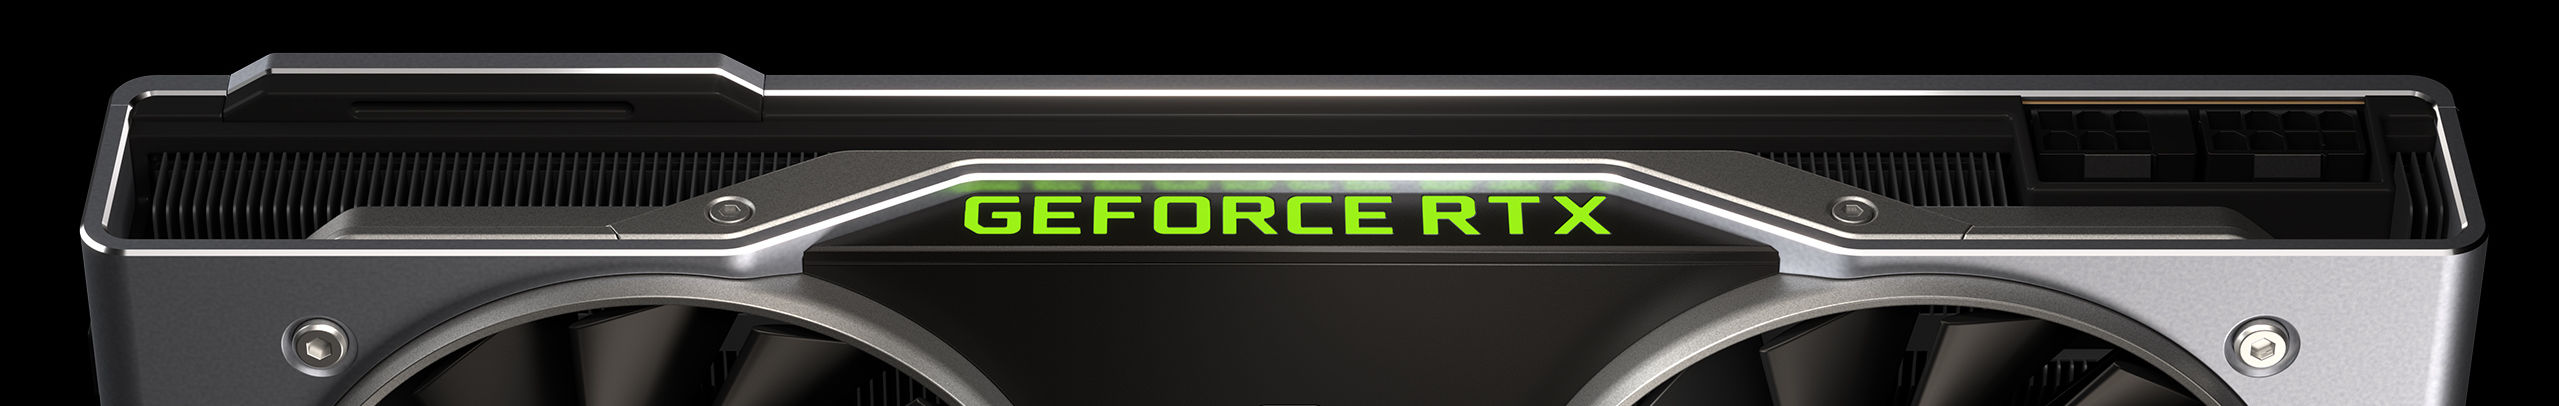 NVIDIA GeForce RTX 2080 reviews go live on September 17th